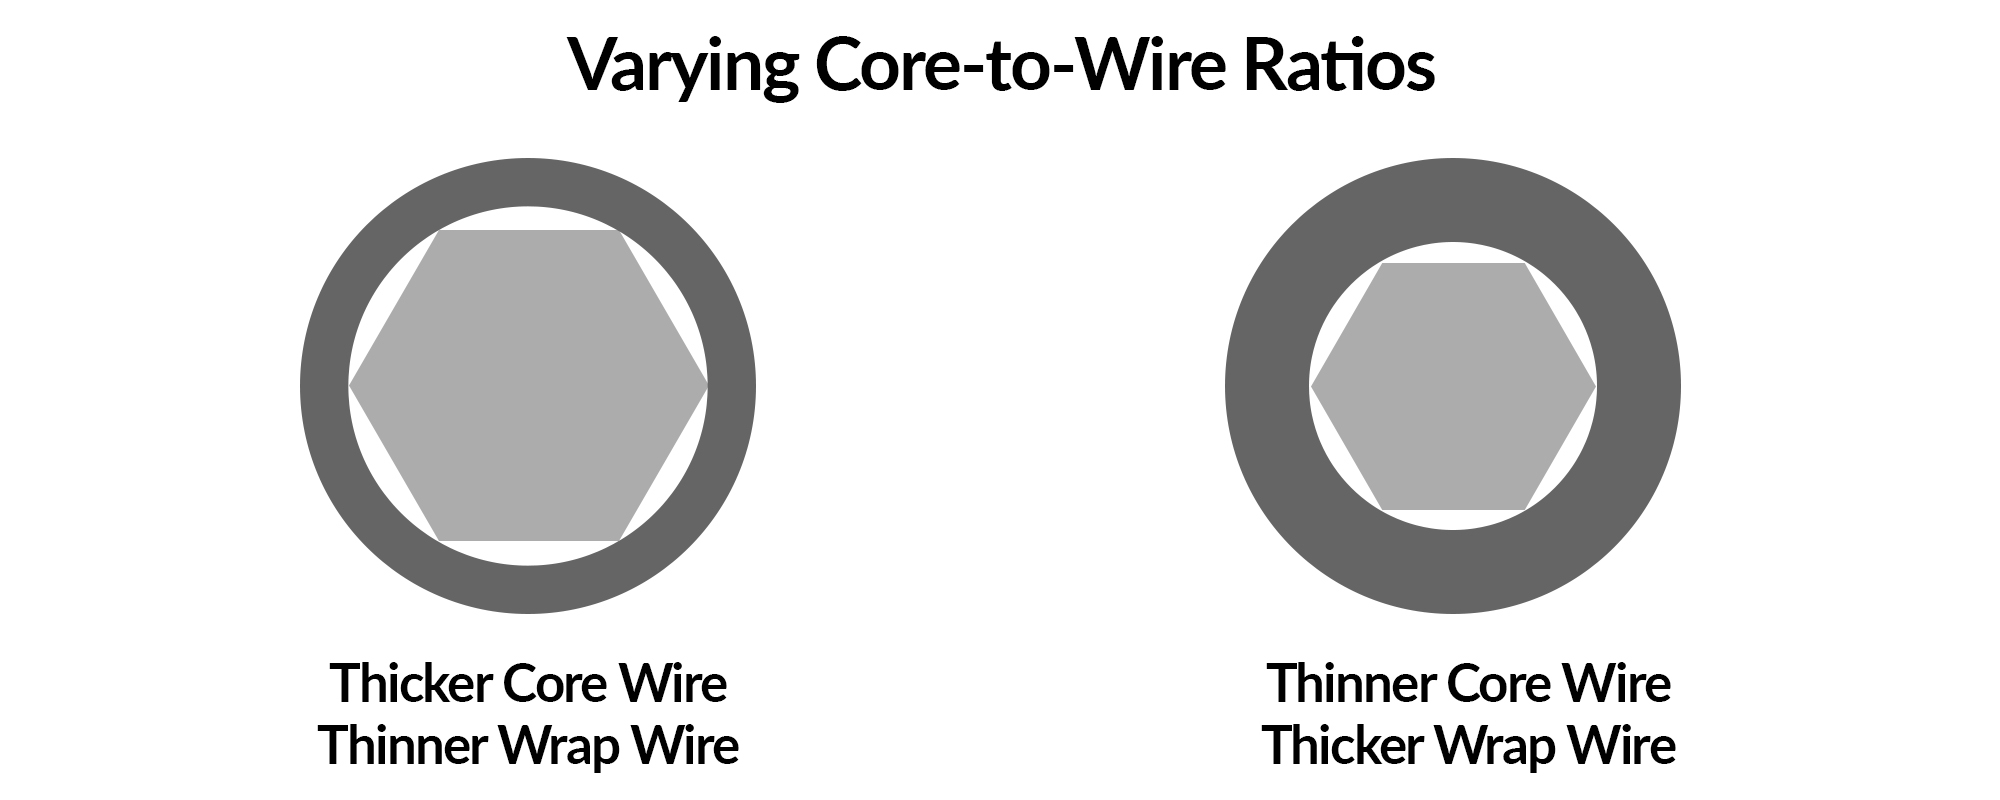 Core-to-wire ratio